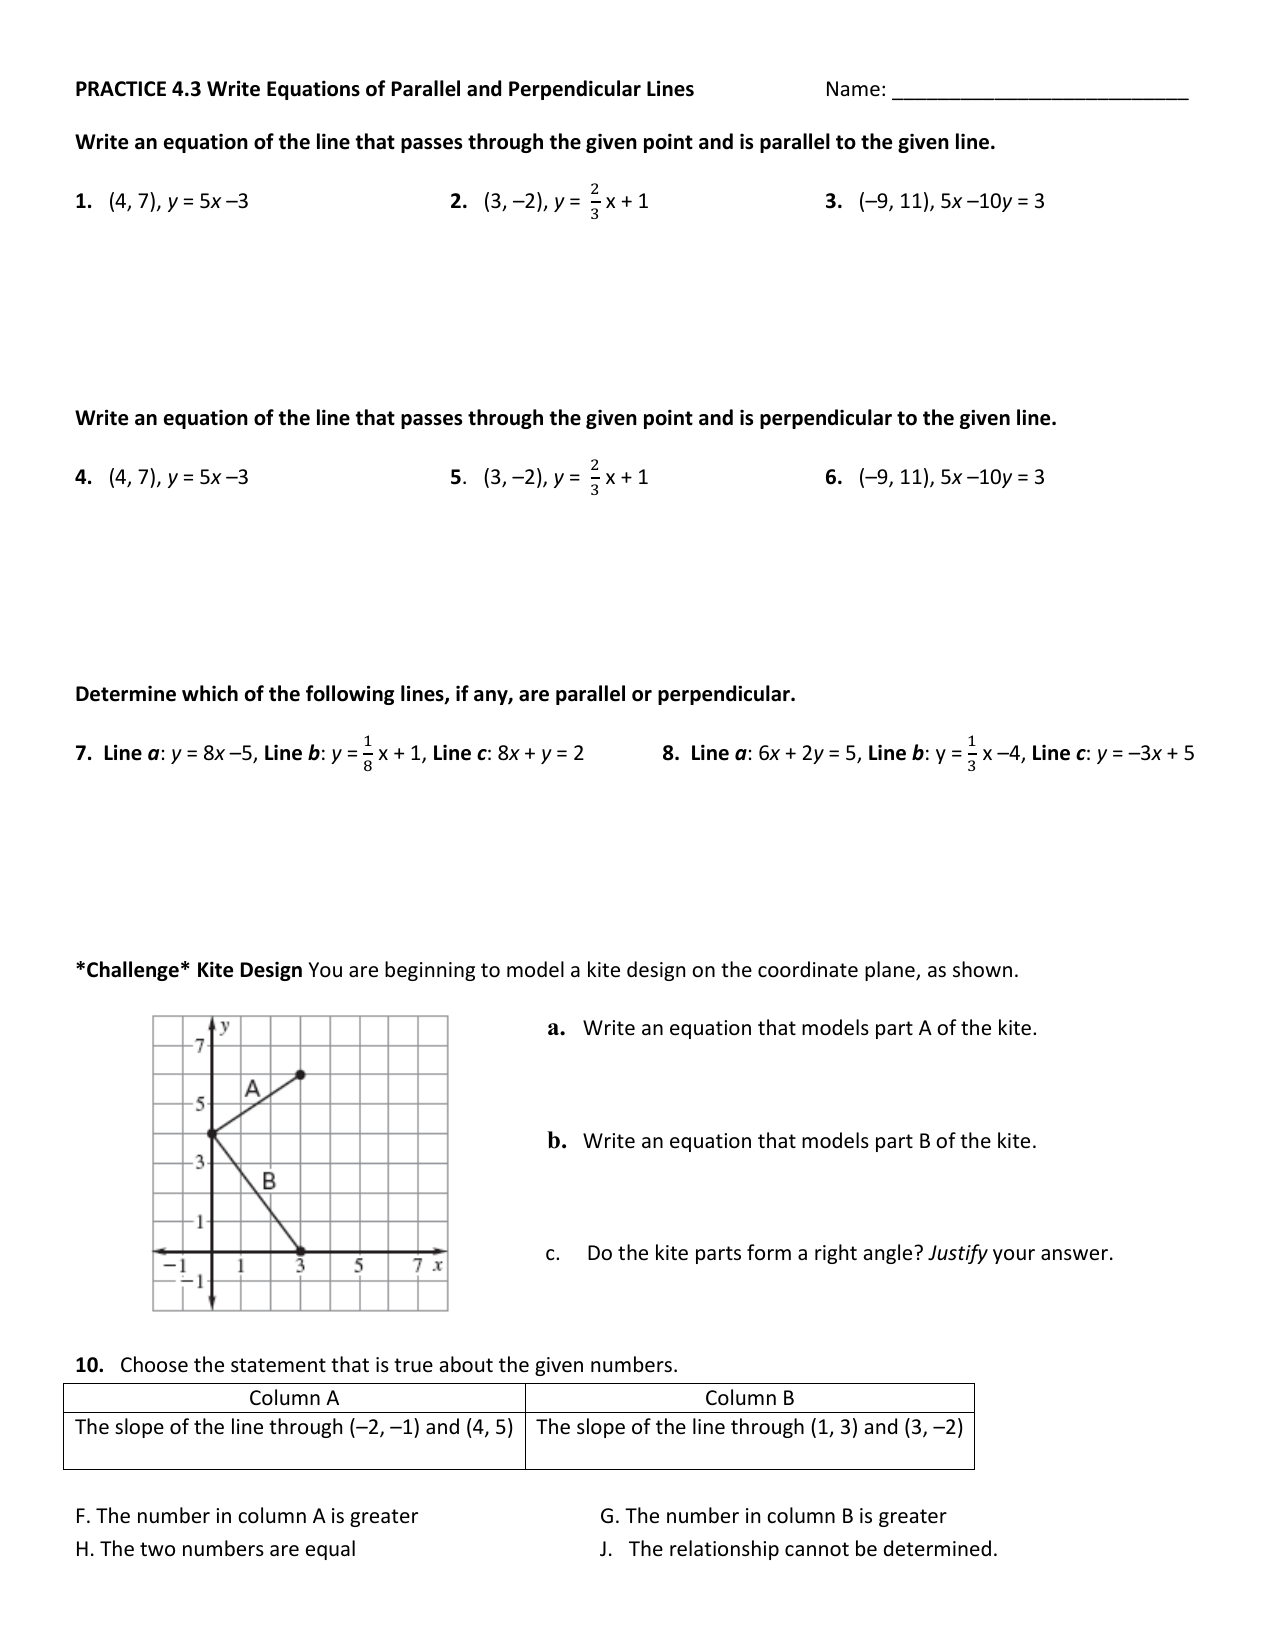 Practice 4.3 Write Equations Of Parallel And Perpendicular Lines